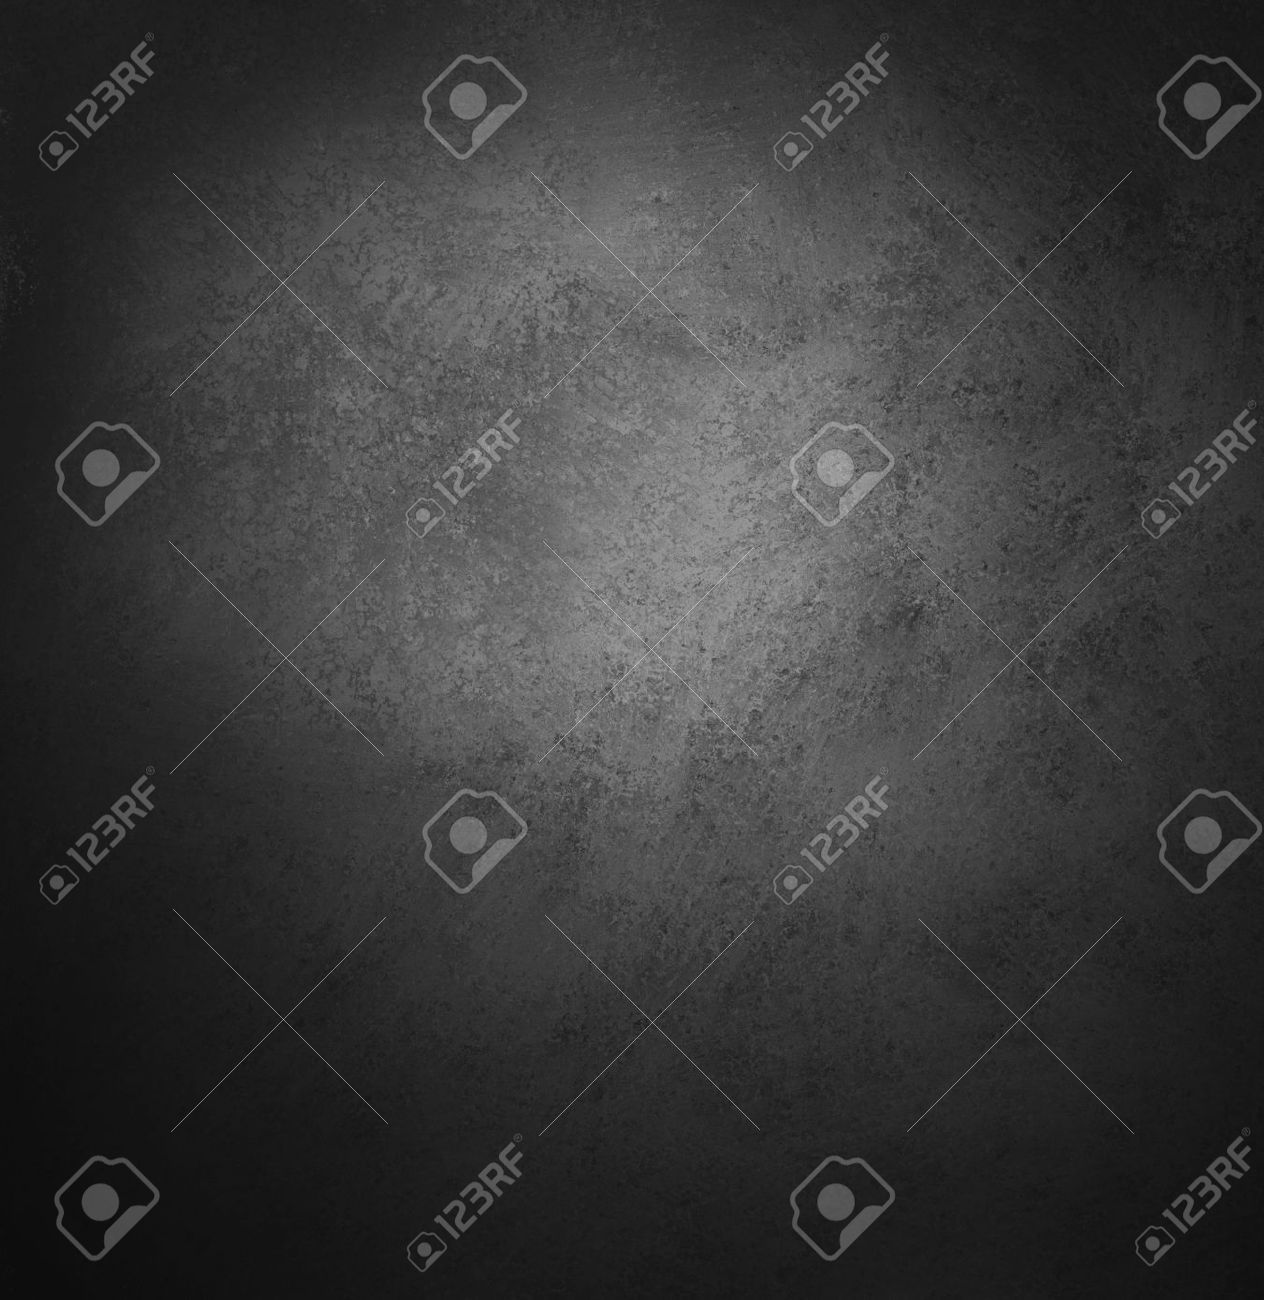 abstract black background, old black vignette border frame on white gray background, vintage grunge background texture design, black and white monochrome background for printing brochures or papers Stock Photo - 14674355